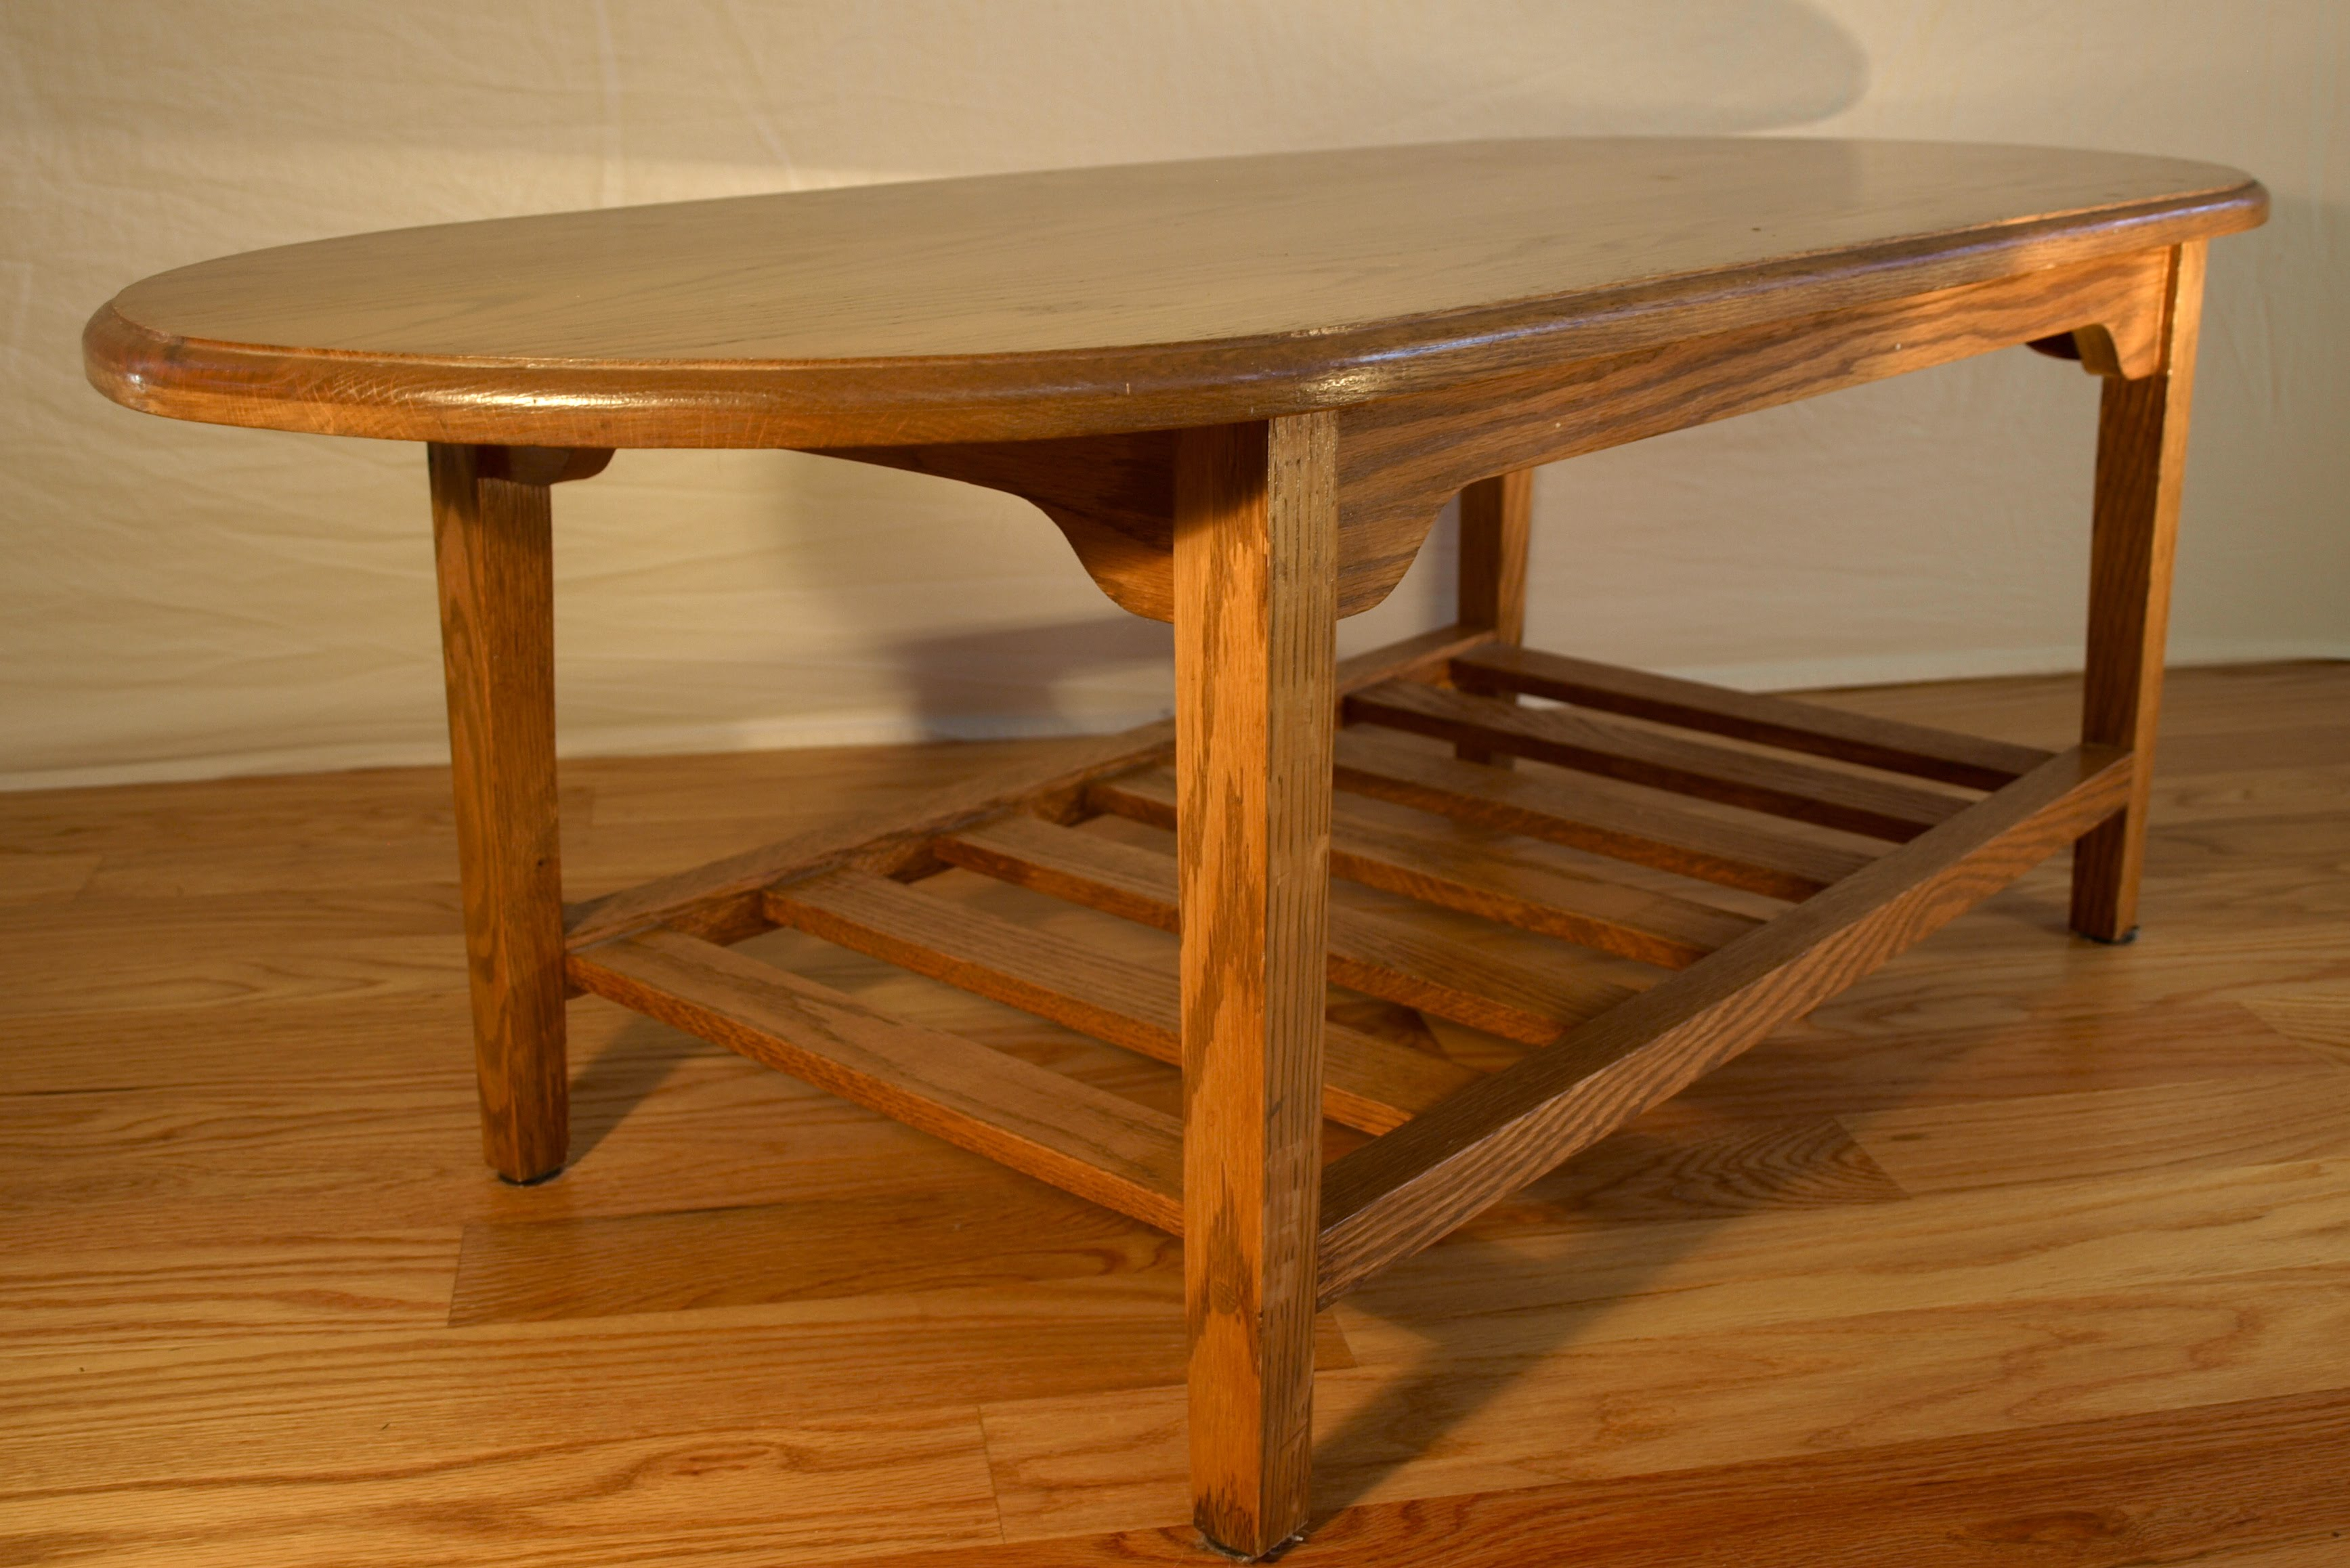 Trend Simple everyday tables made from red oak three were made oval coffee table square side table rectangular side table Each has a lattice style